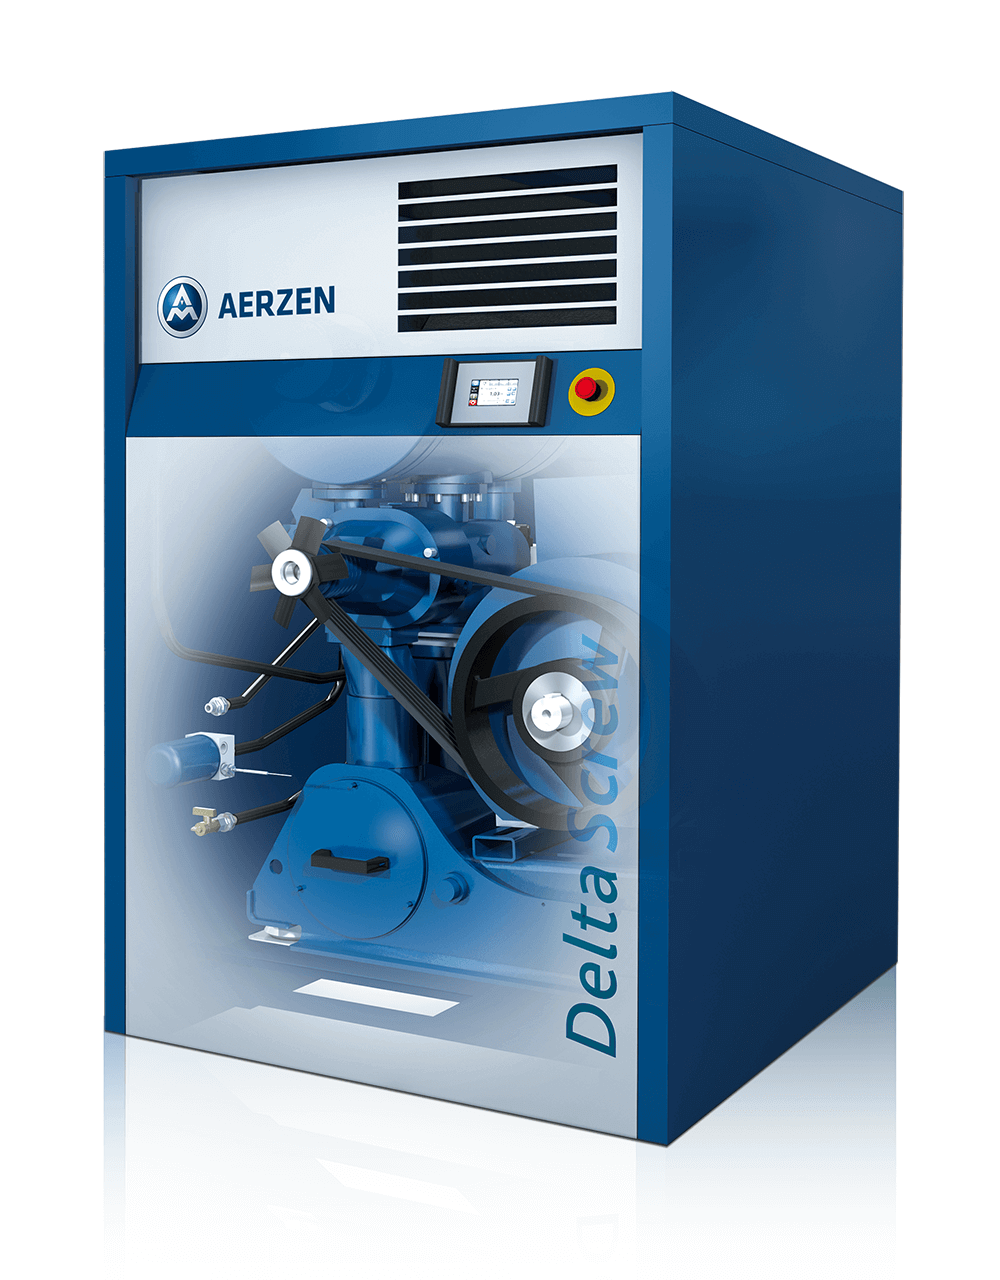 Picture of the new Delta Screw Generation 5 Plus - an energy efficient development of screw compressor series Delta Screw Generation 5